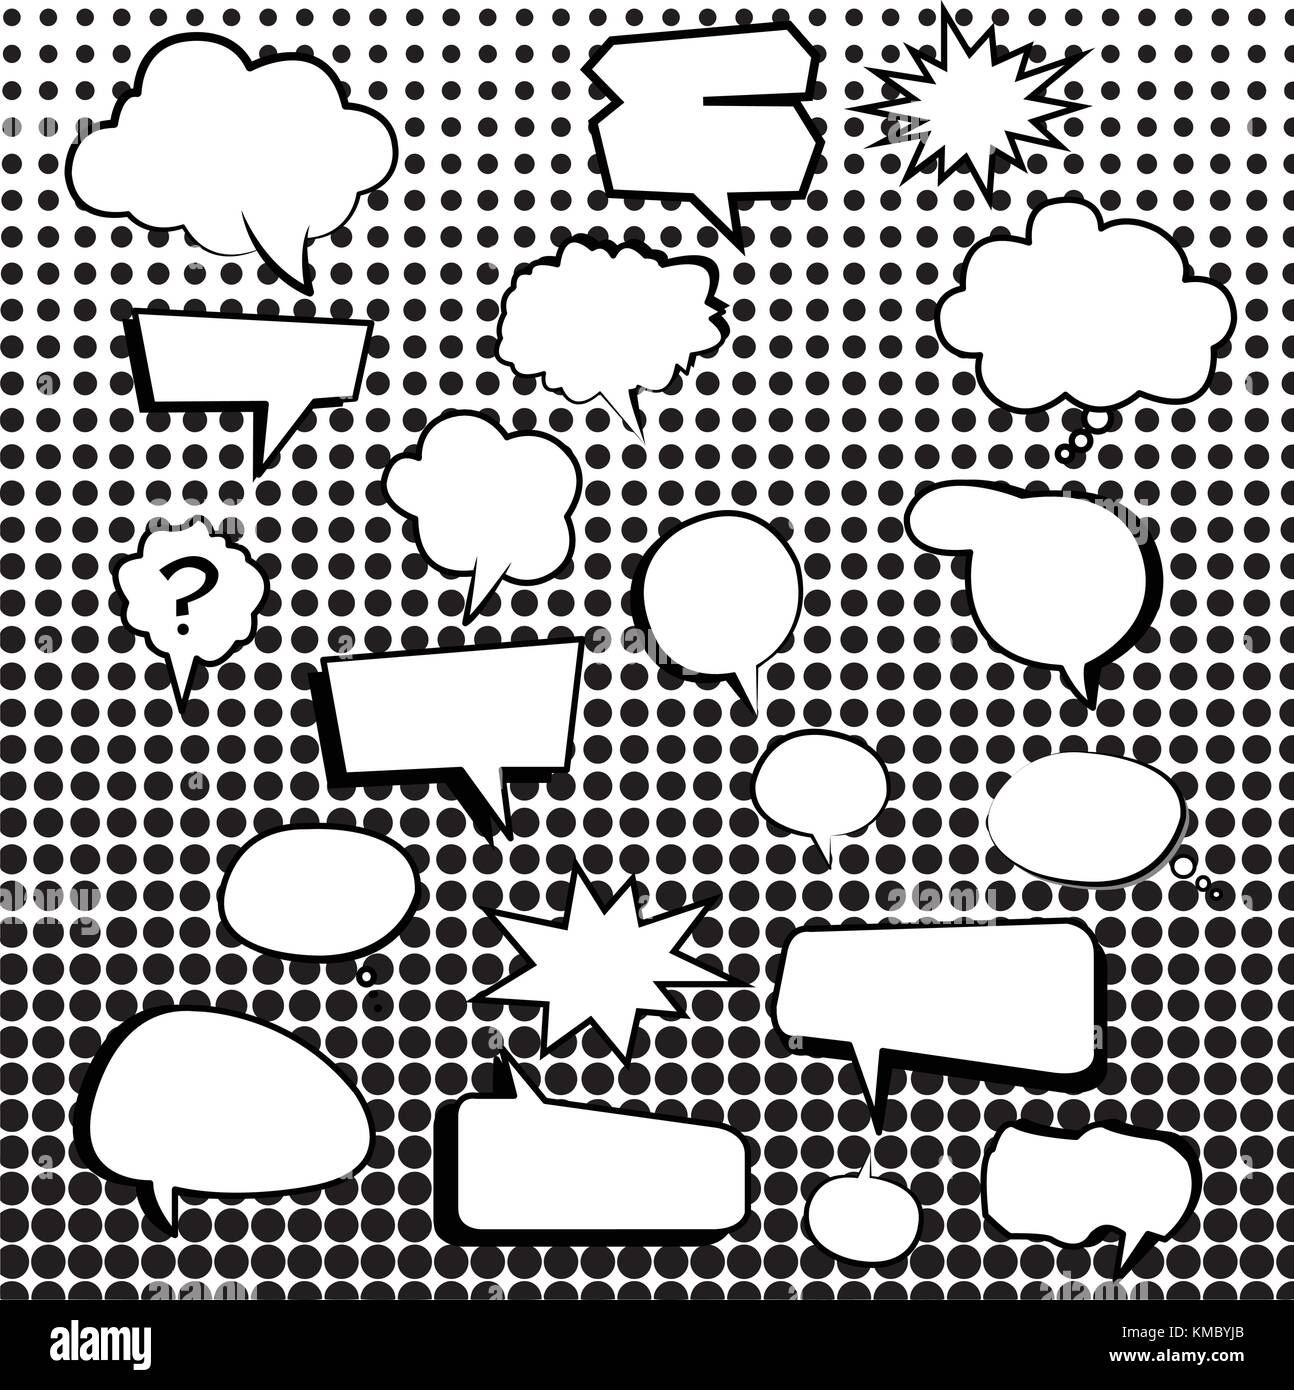 Comic text boxes with elements and dot pattern vector illustration - Stock Image